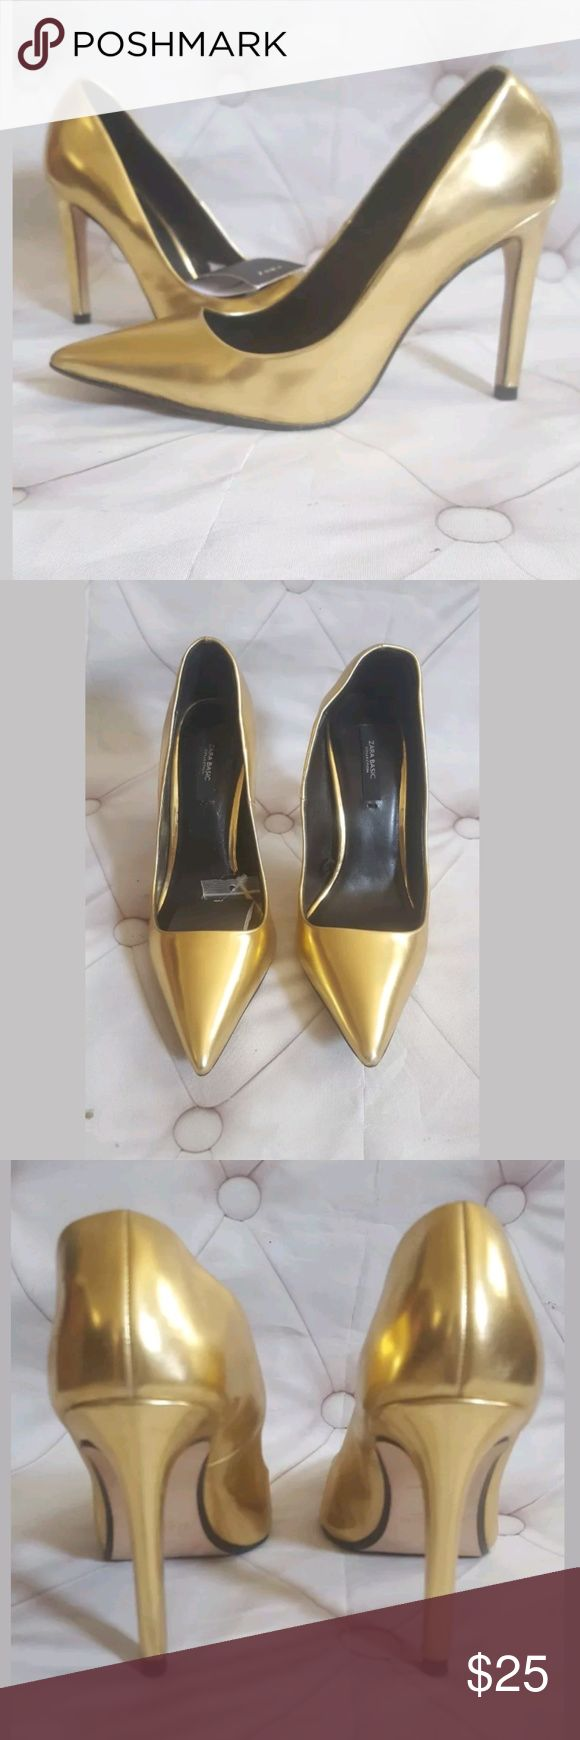 Zara Gold Heels sz EU 37 US 6.5 may fit 6 Zara Gold Heels sz EU 37 US 6.5.shoe size it runs small.  I am 6.5 it fits but fits tightly.Can likely fit a size 6 as well. The shoes have been worn once Please observe all pictures. Shoes have minor scuffs.The left foot was slightly stretched but on foot conforms so does not look stretched on foot.Most scuffs located on left foot on right side where less noticeable on profile of foot. Minor scuffs noticeable unless at close eye level. Overall good…